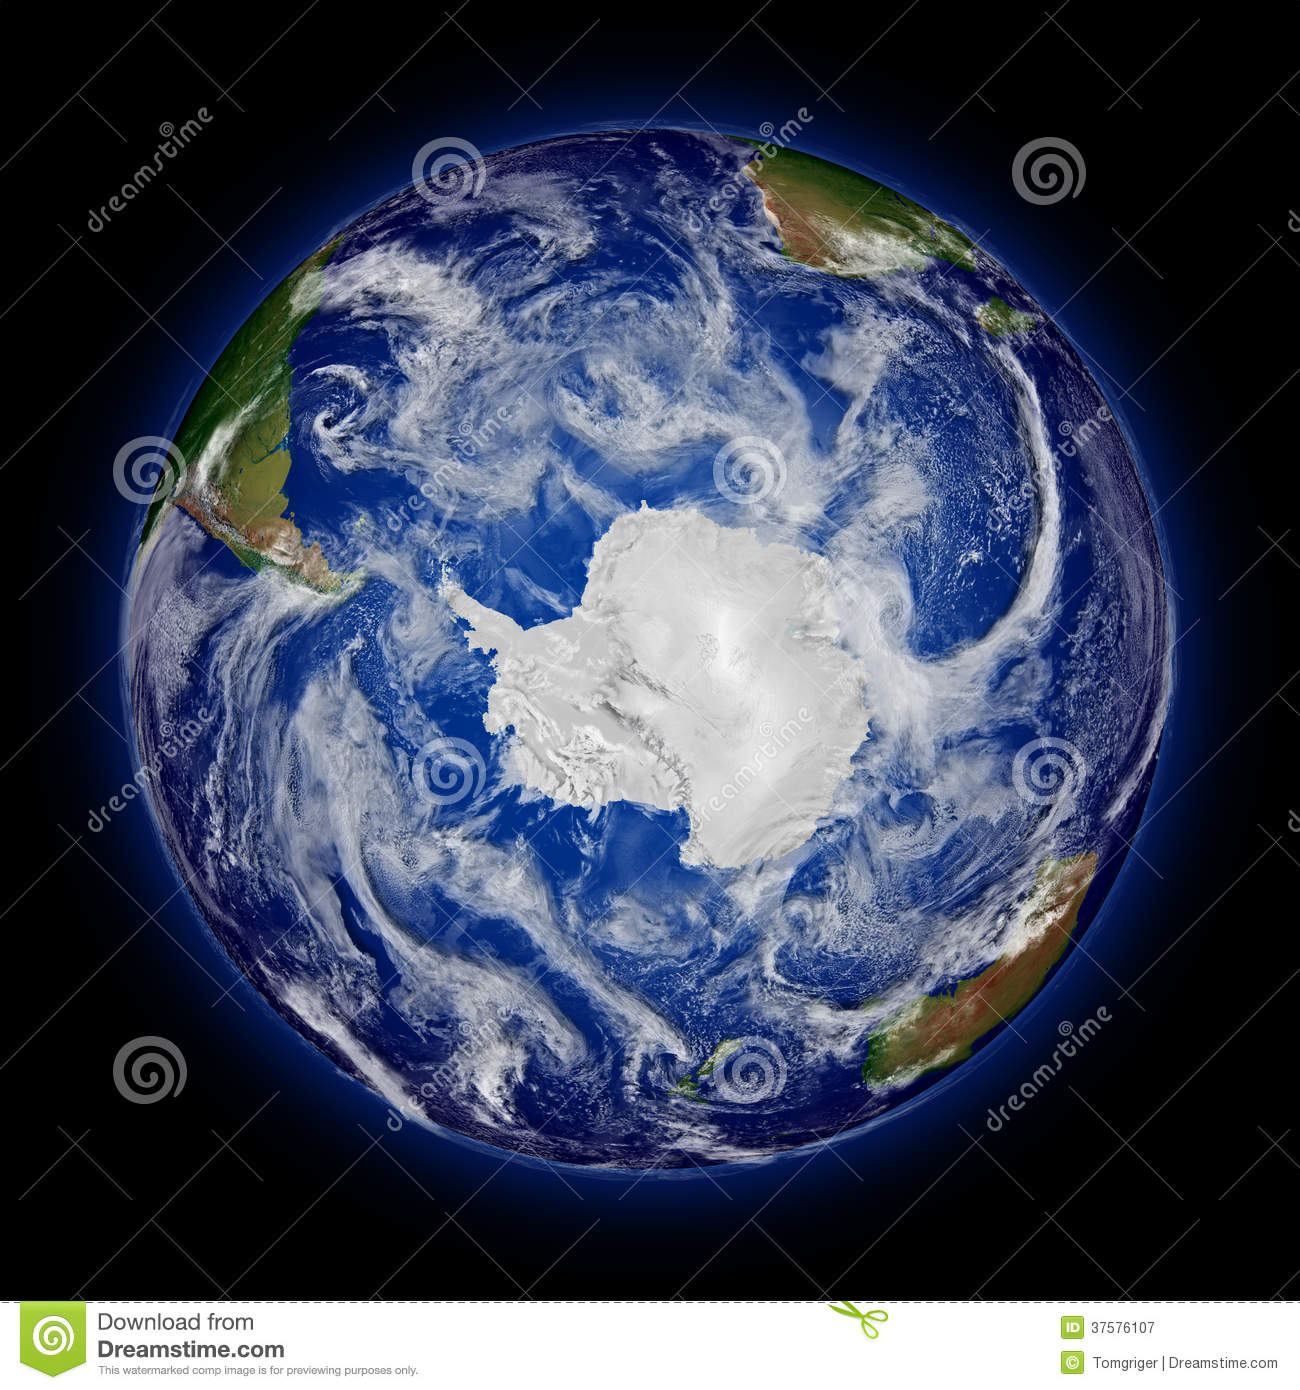 Antarctica on blue planet Earth isolated on black background. Highly ...